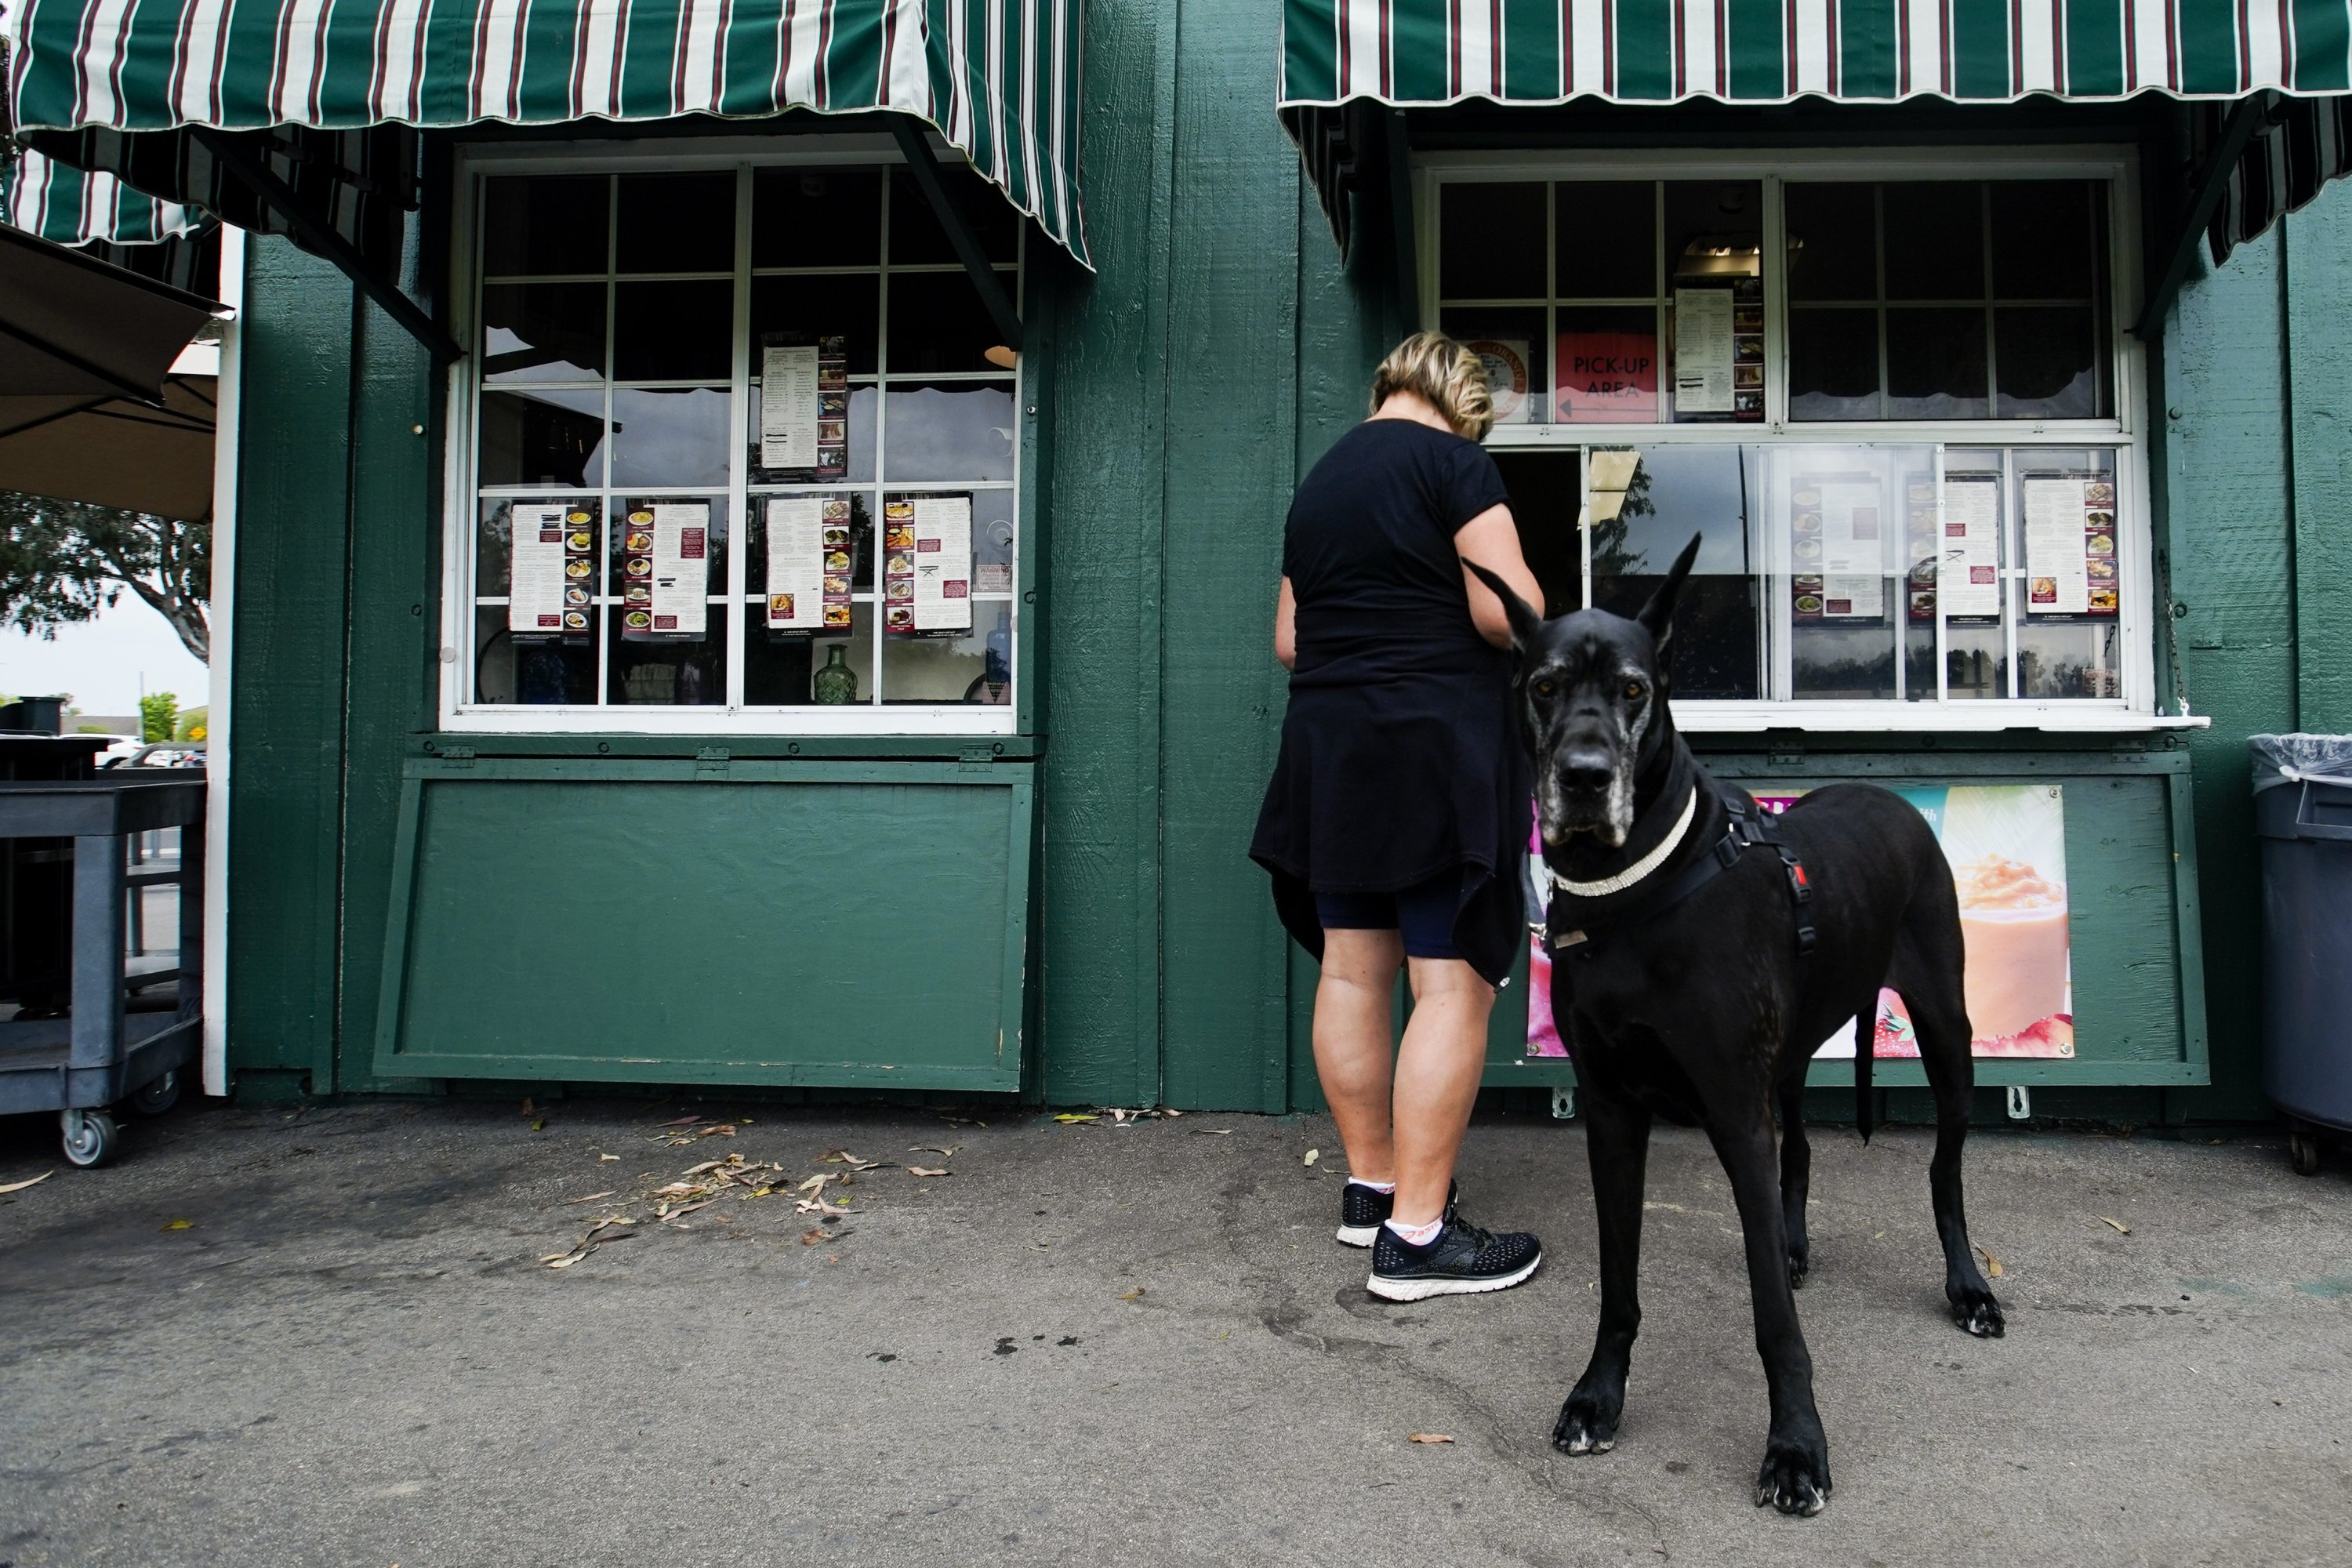 Debbis Rime orders at the take-out window with her dog Maddie at the Park Bench Cafe on Tuesday, May 12, 2020, in Huntington Beach, Calif. (AP Photo)